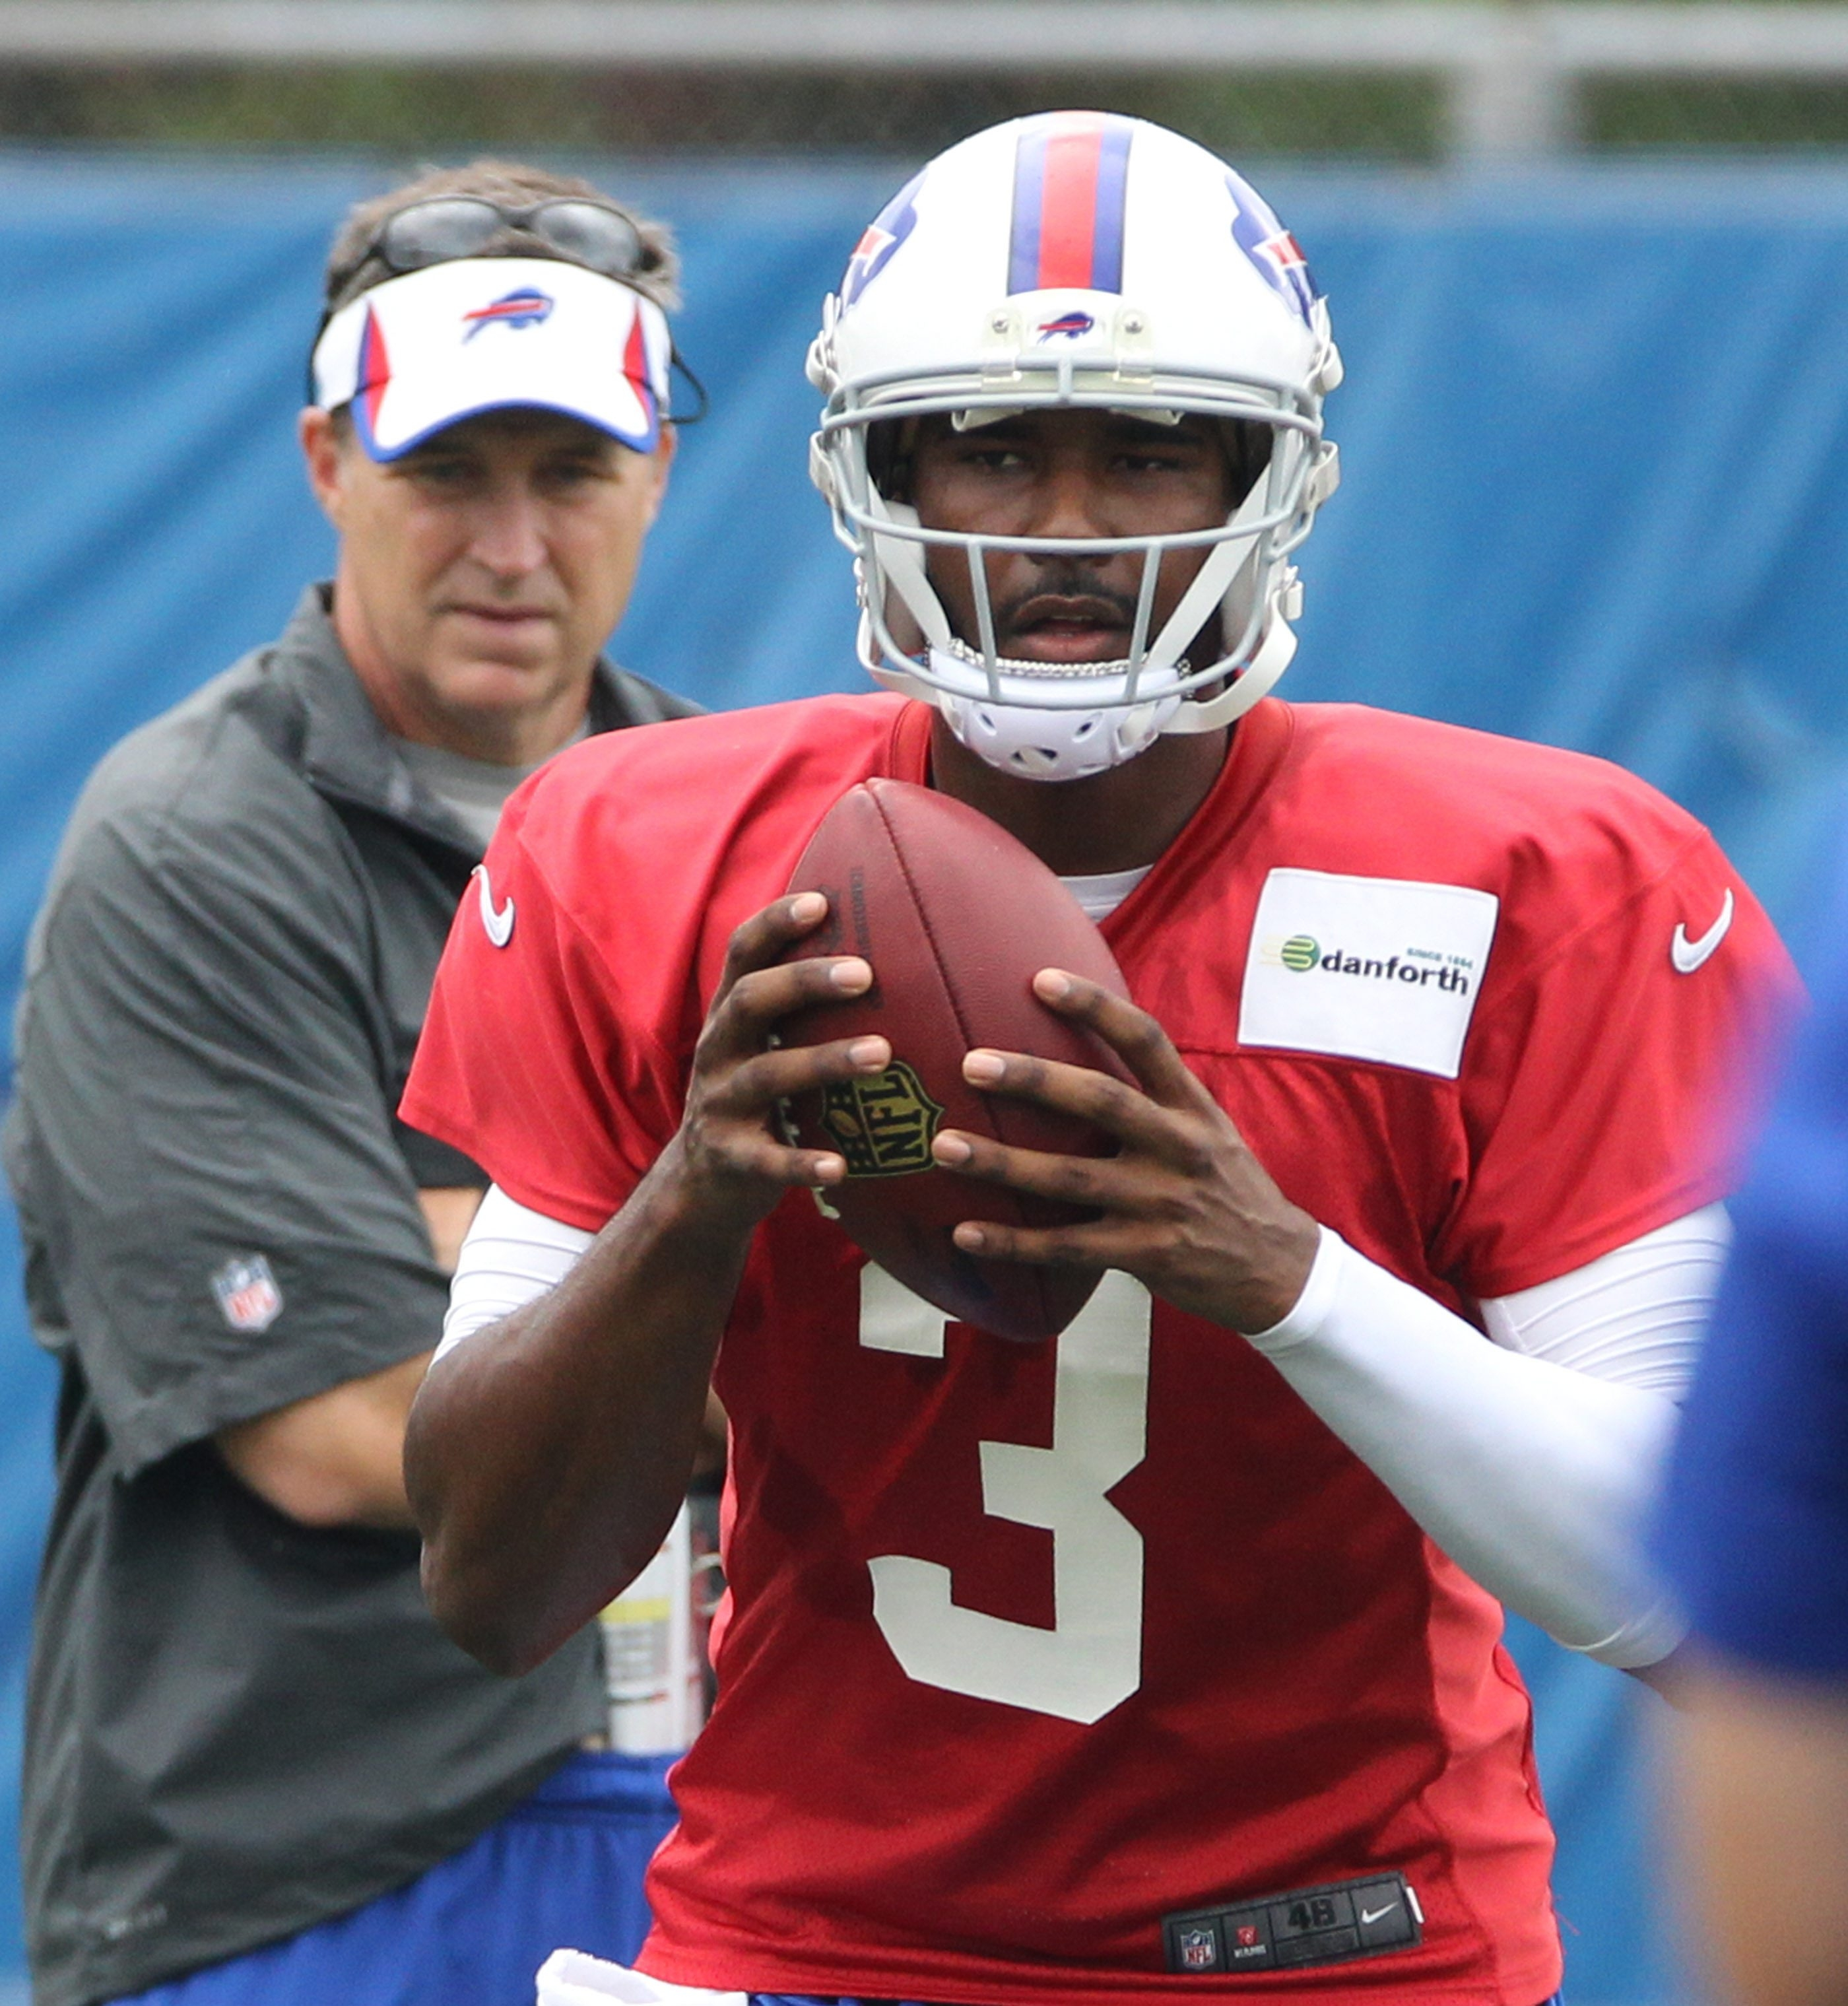 EJ Manuel looks athletic and agile in practice just 19 days after suffering a minor knee injury.